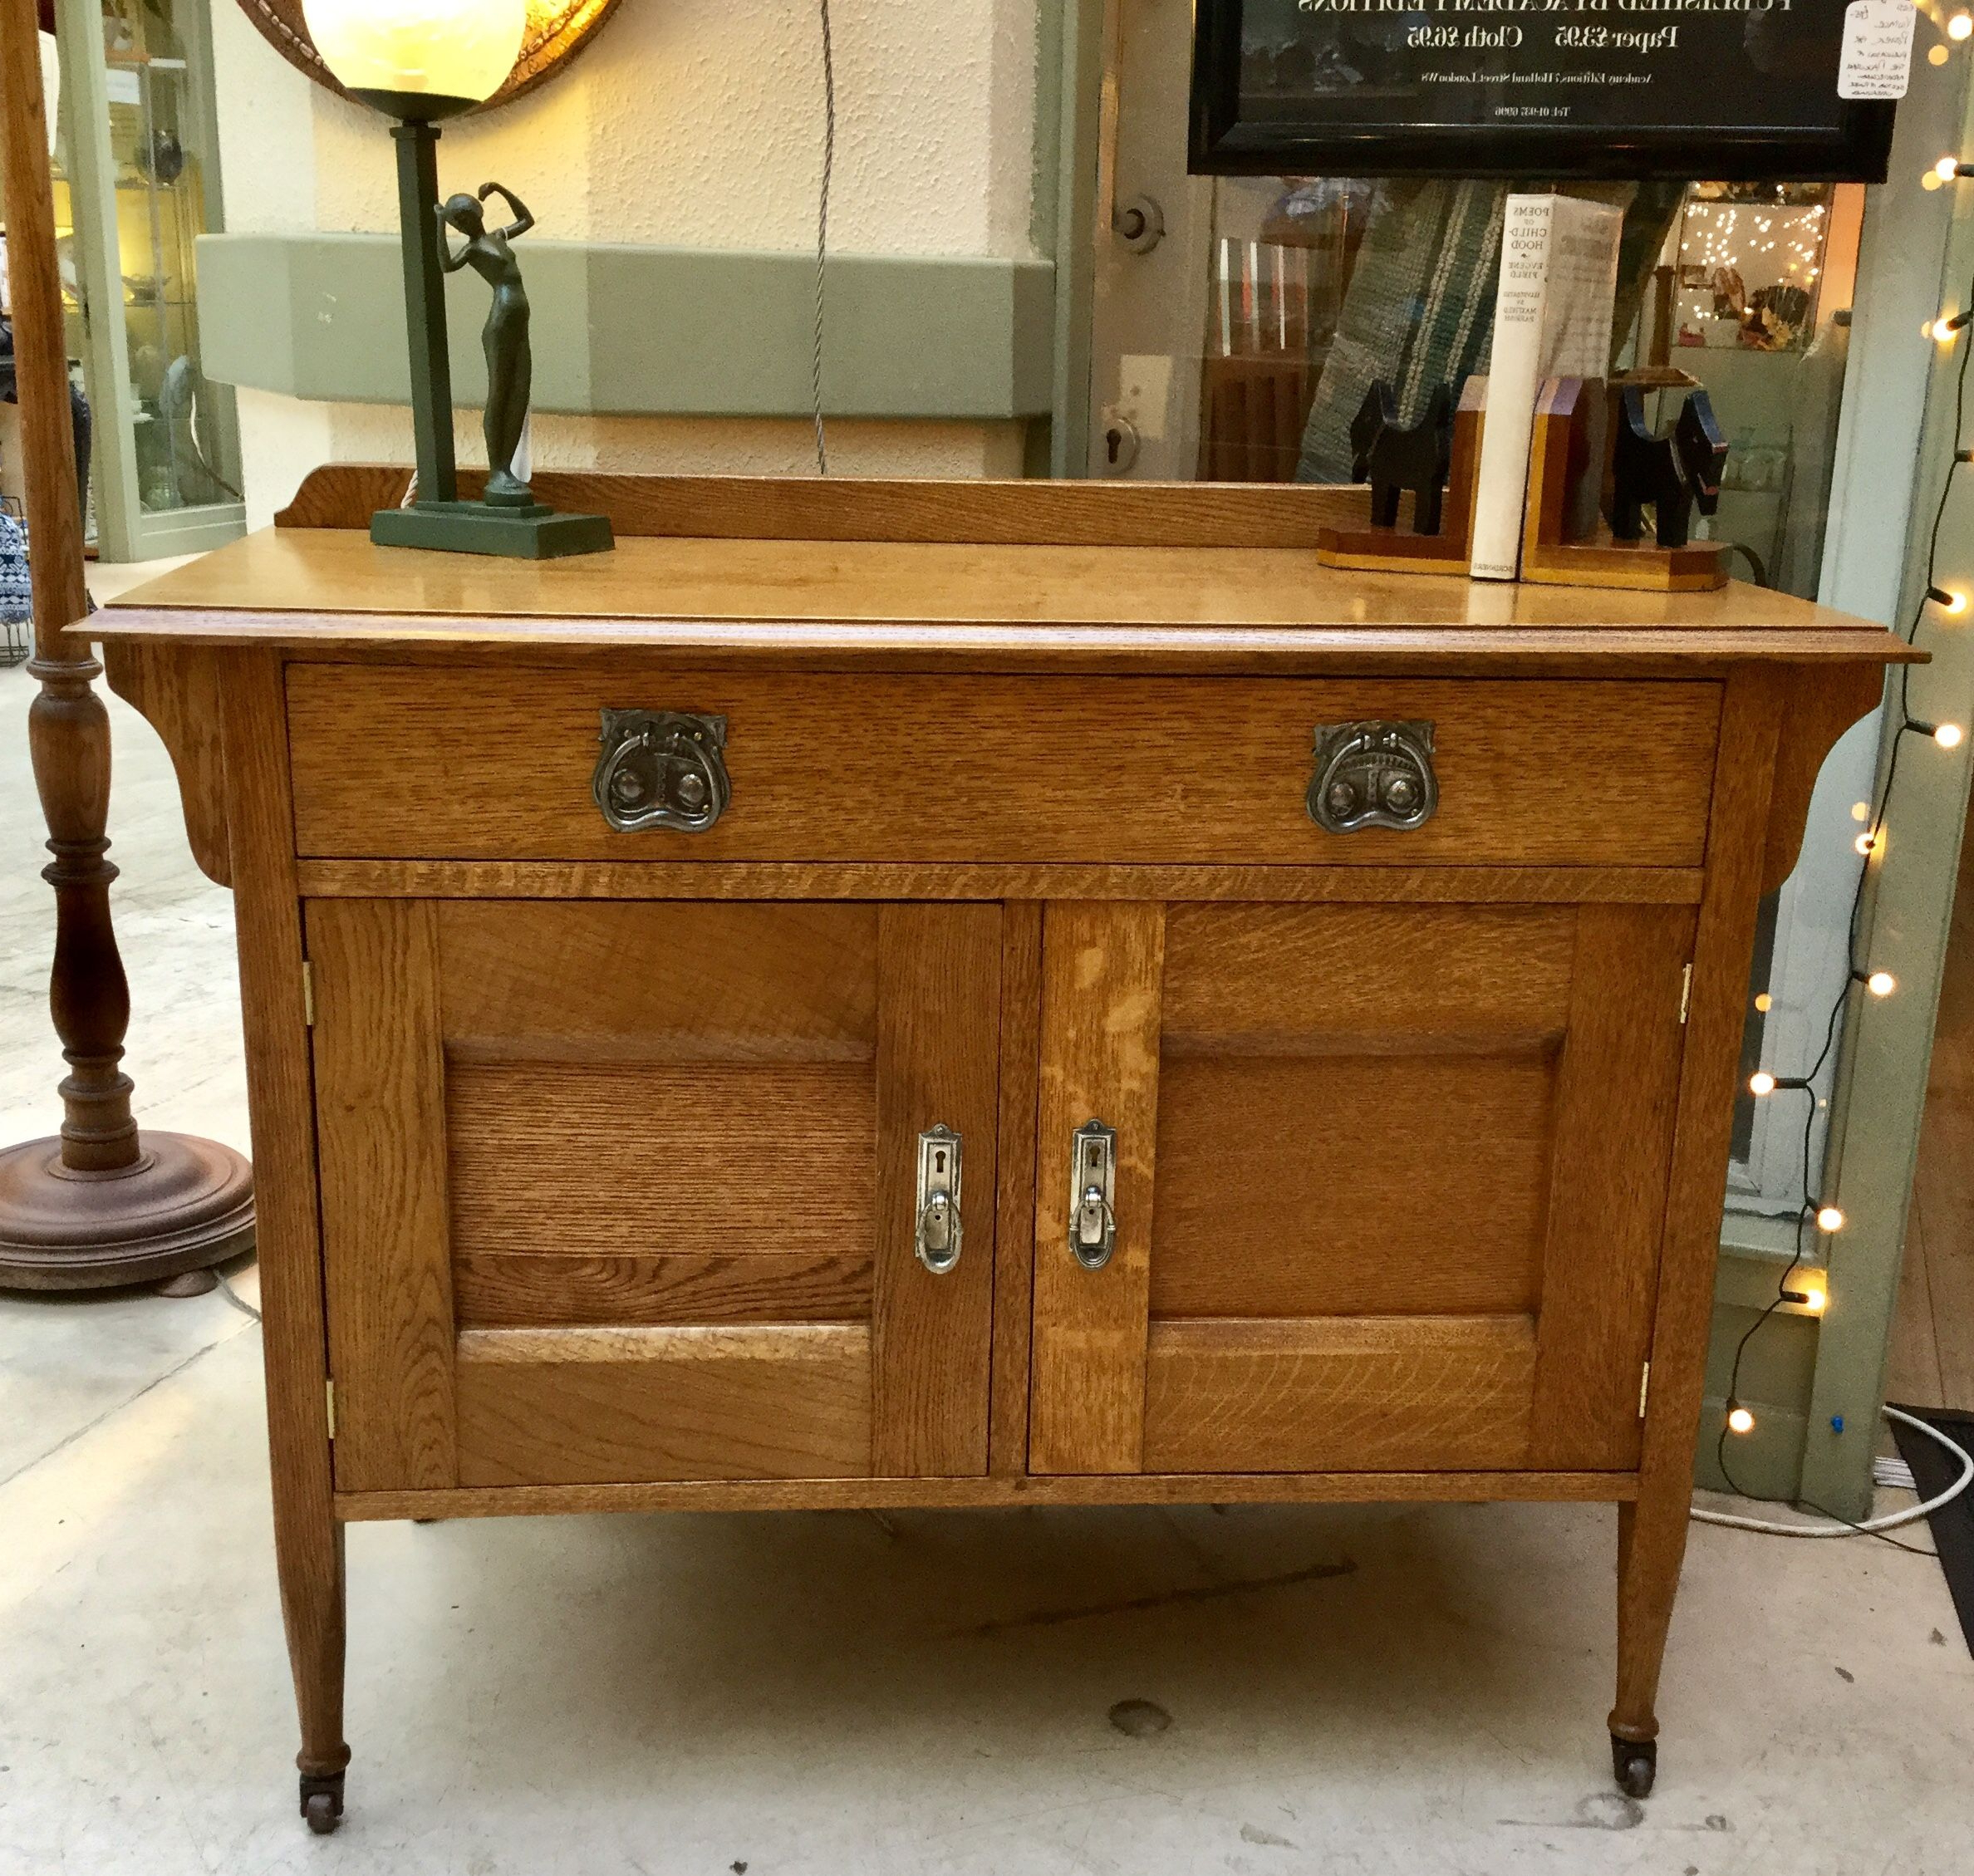 Ruskin Sideboards Regarding Most Up To Date Nice Oak Cupboard/ Sideboardharris Lebus. (View 17 of 20)